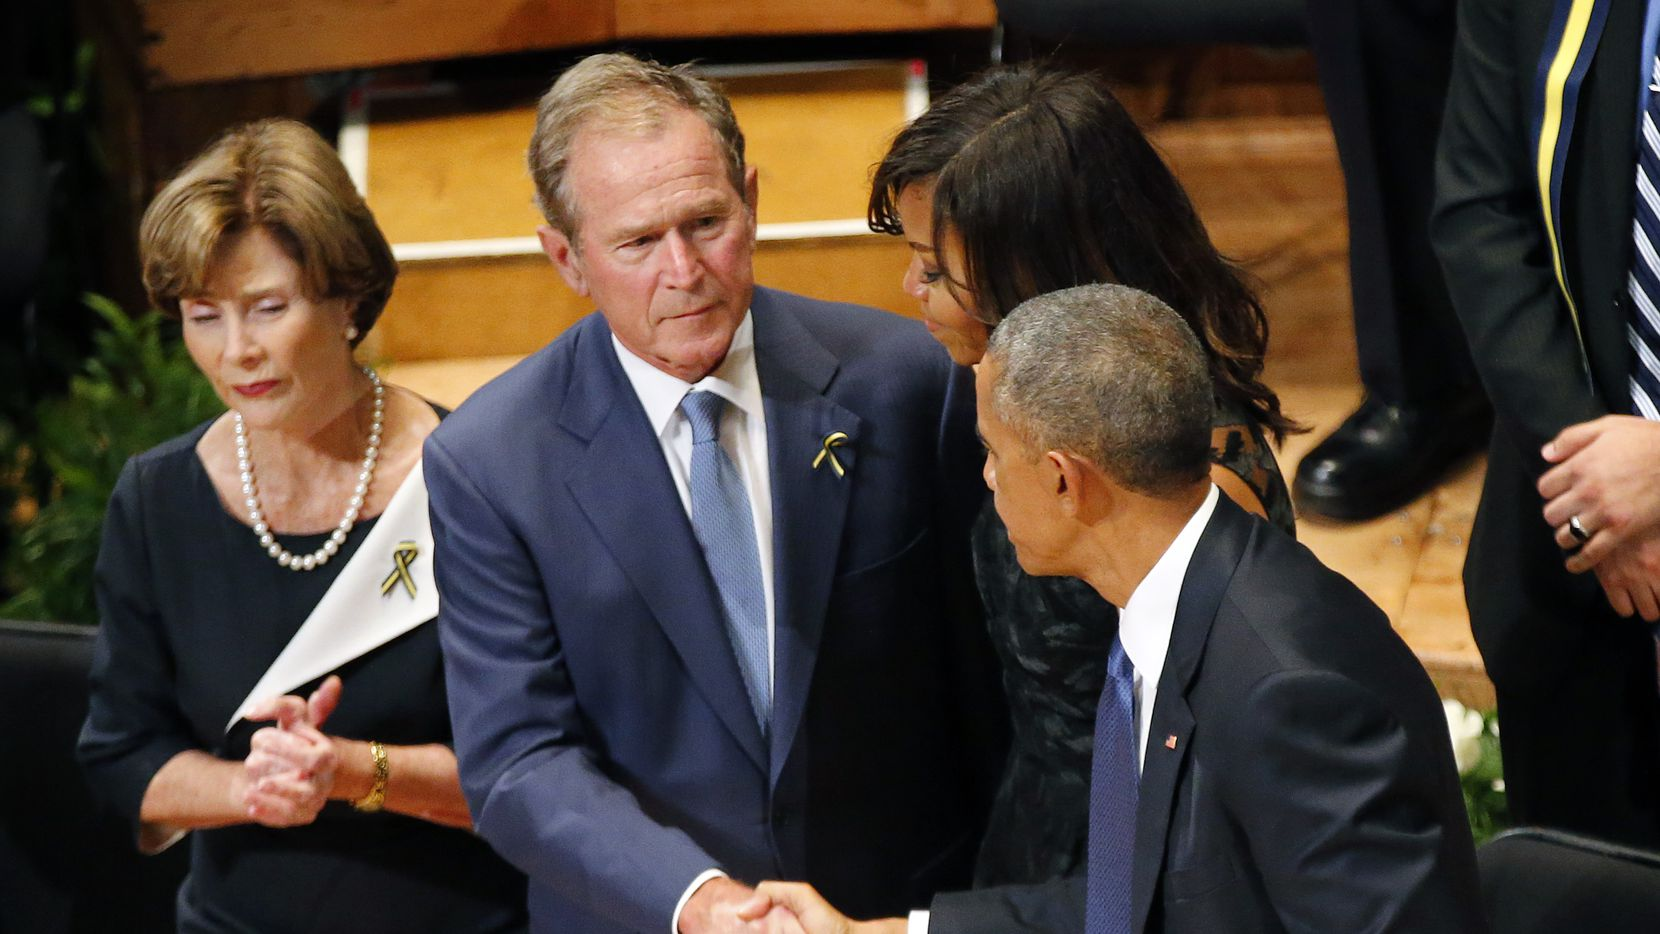 President George W. Bush is apparently concerned that Donald Trump will do long-term damage to the GOP.